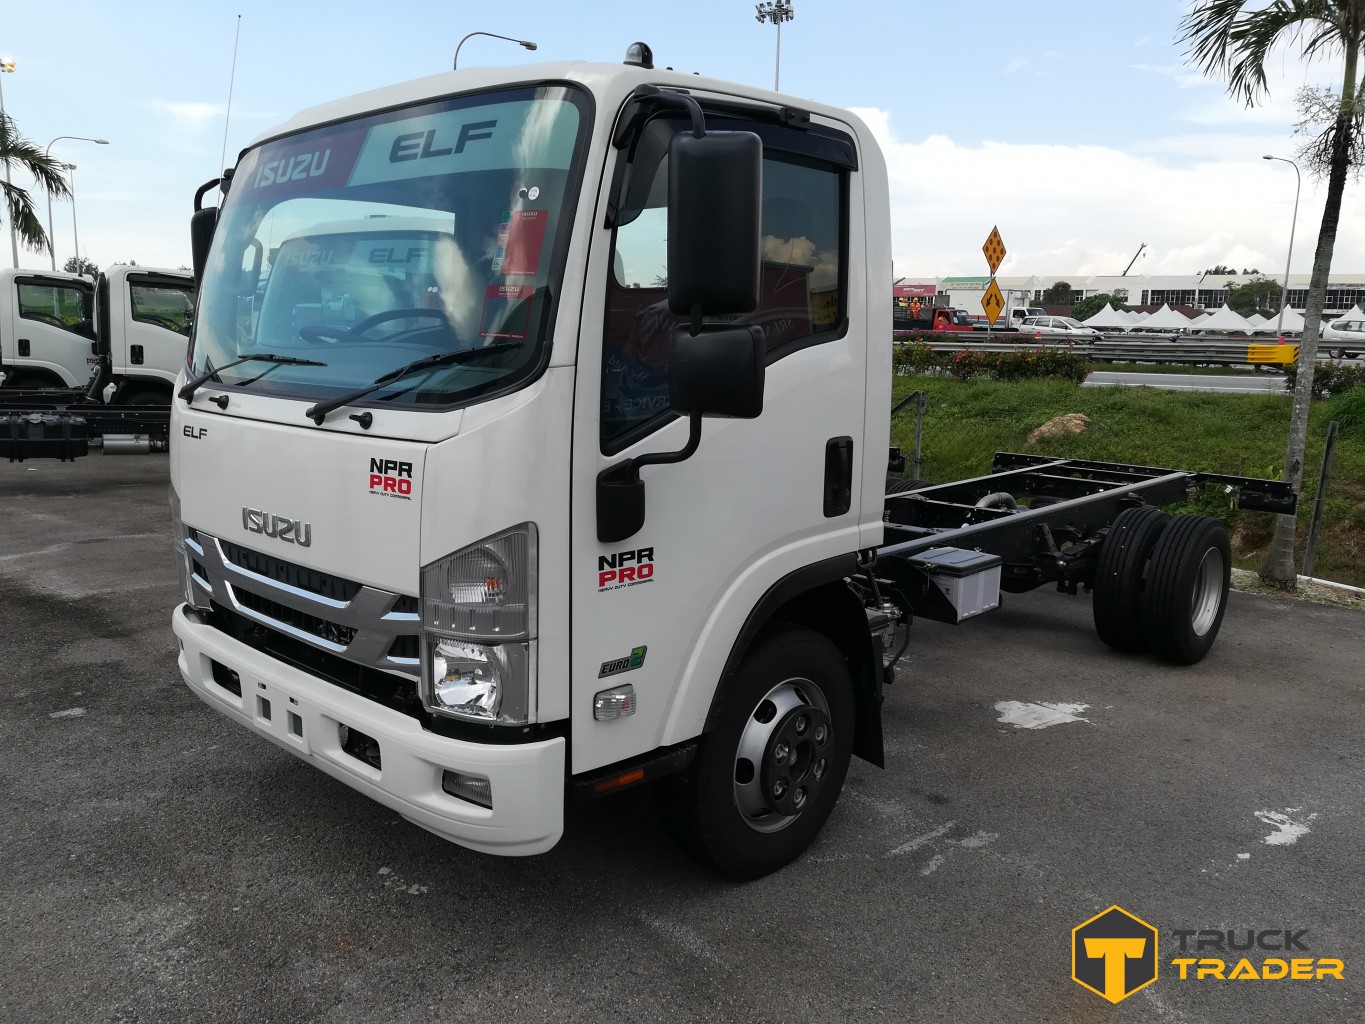 Malaysia Commercial Vehicles Online Shopping Site-TruckTrader